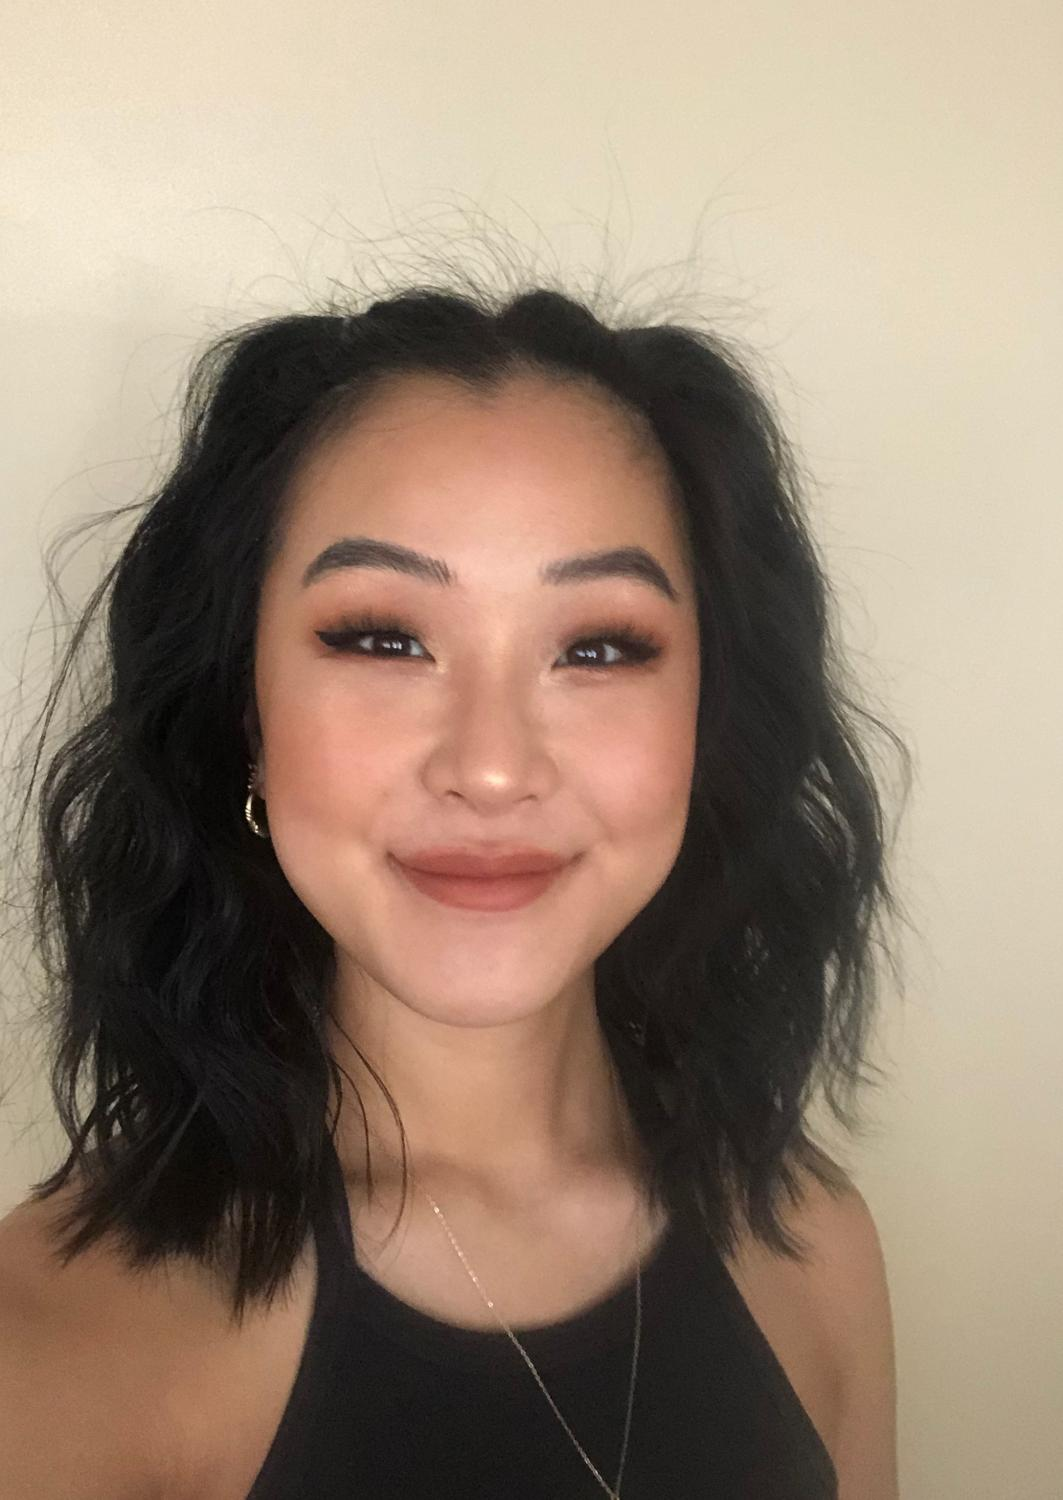 Head and shoulders portrait of a young woman of Asian descent. She is smiling and has wavy dark hair pulled back from her face in barrettes. She is wearing a black tank top.